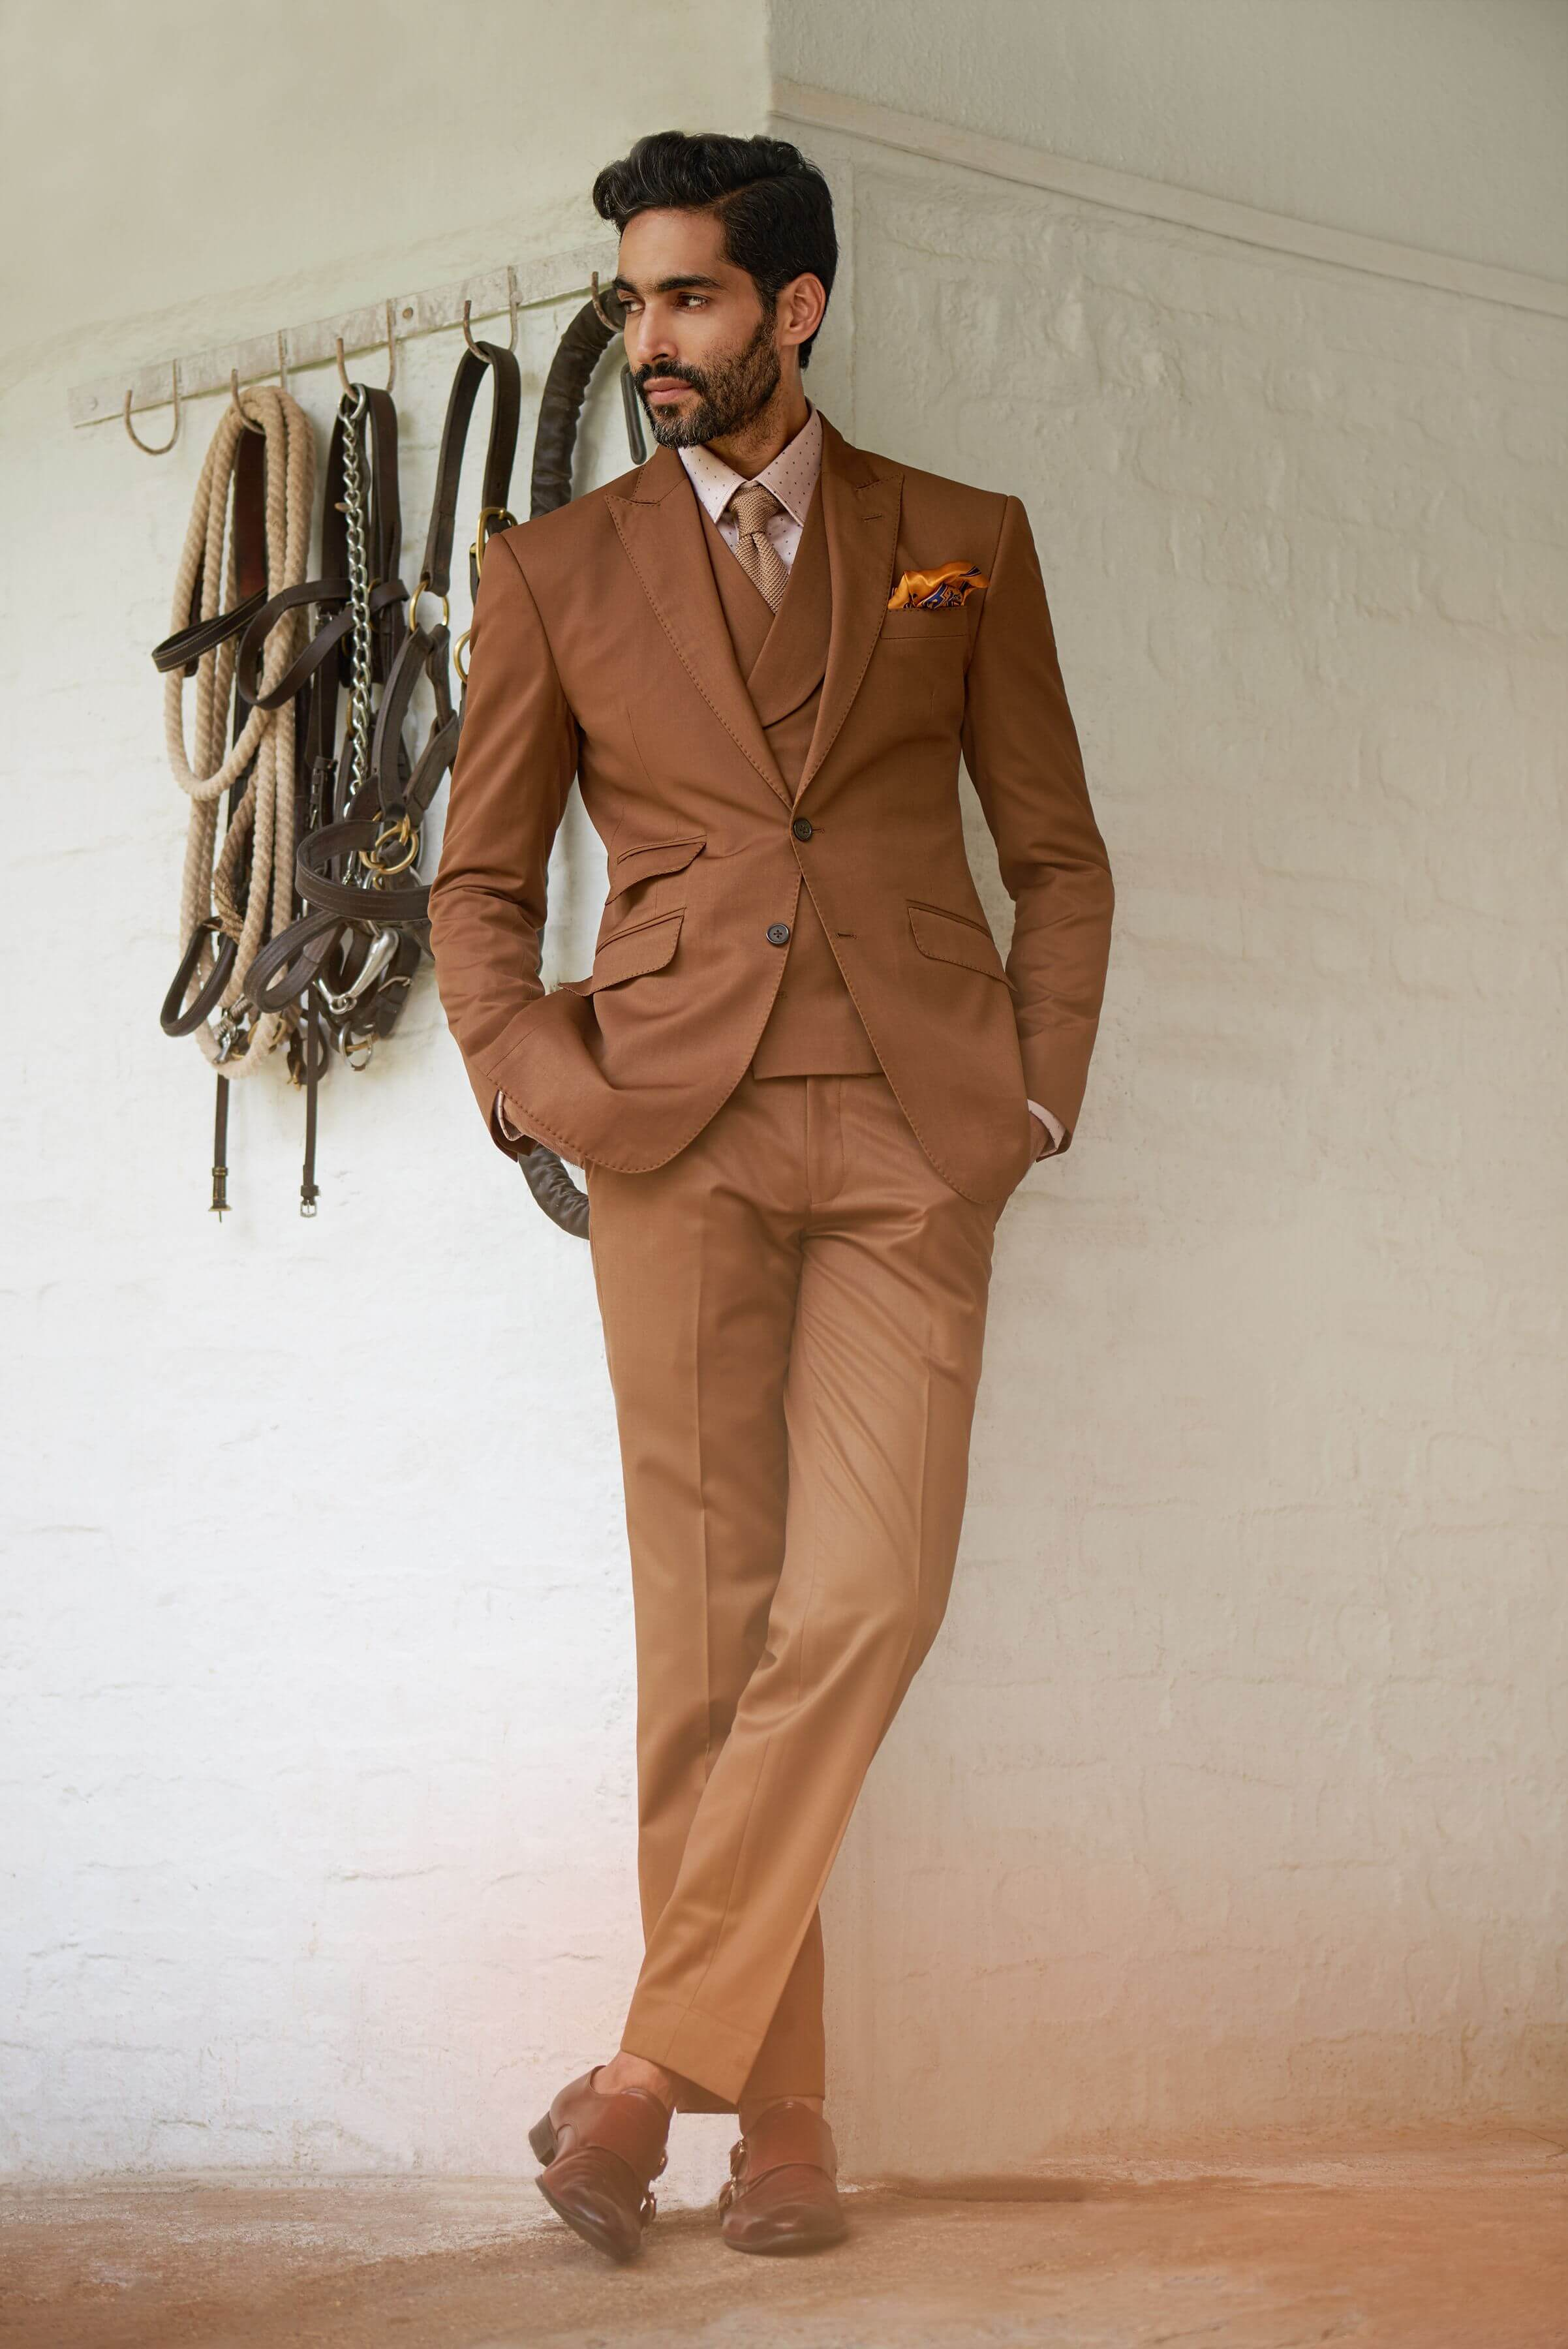 Classic two-button, single-breasted suit with a peak lapel.